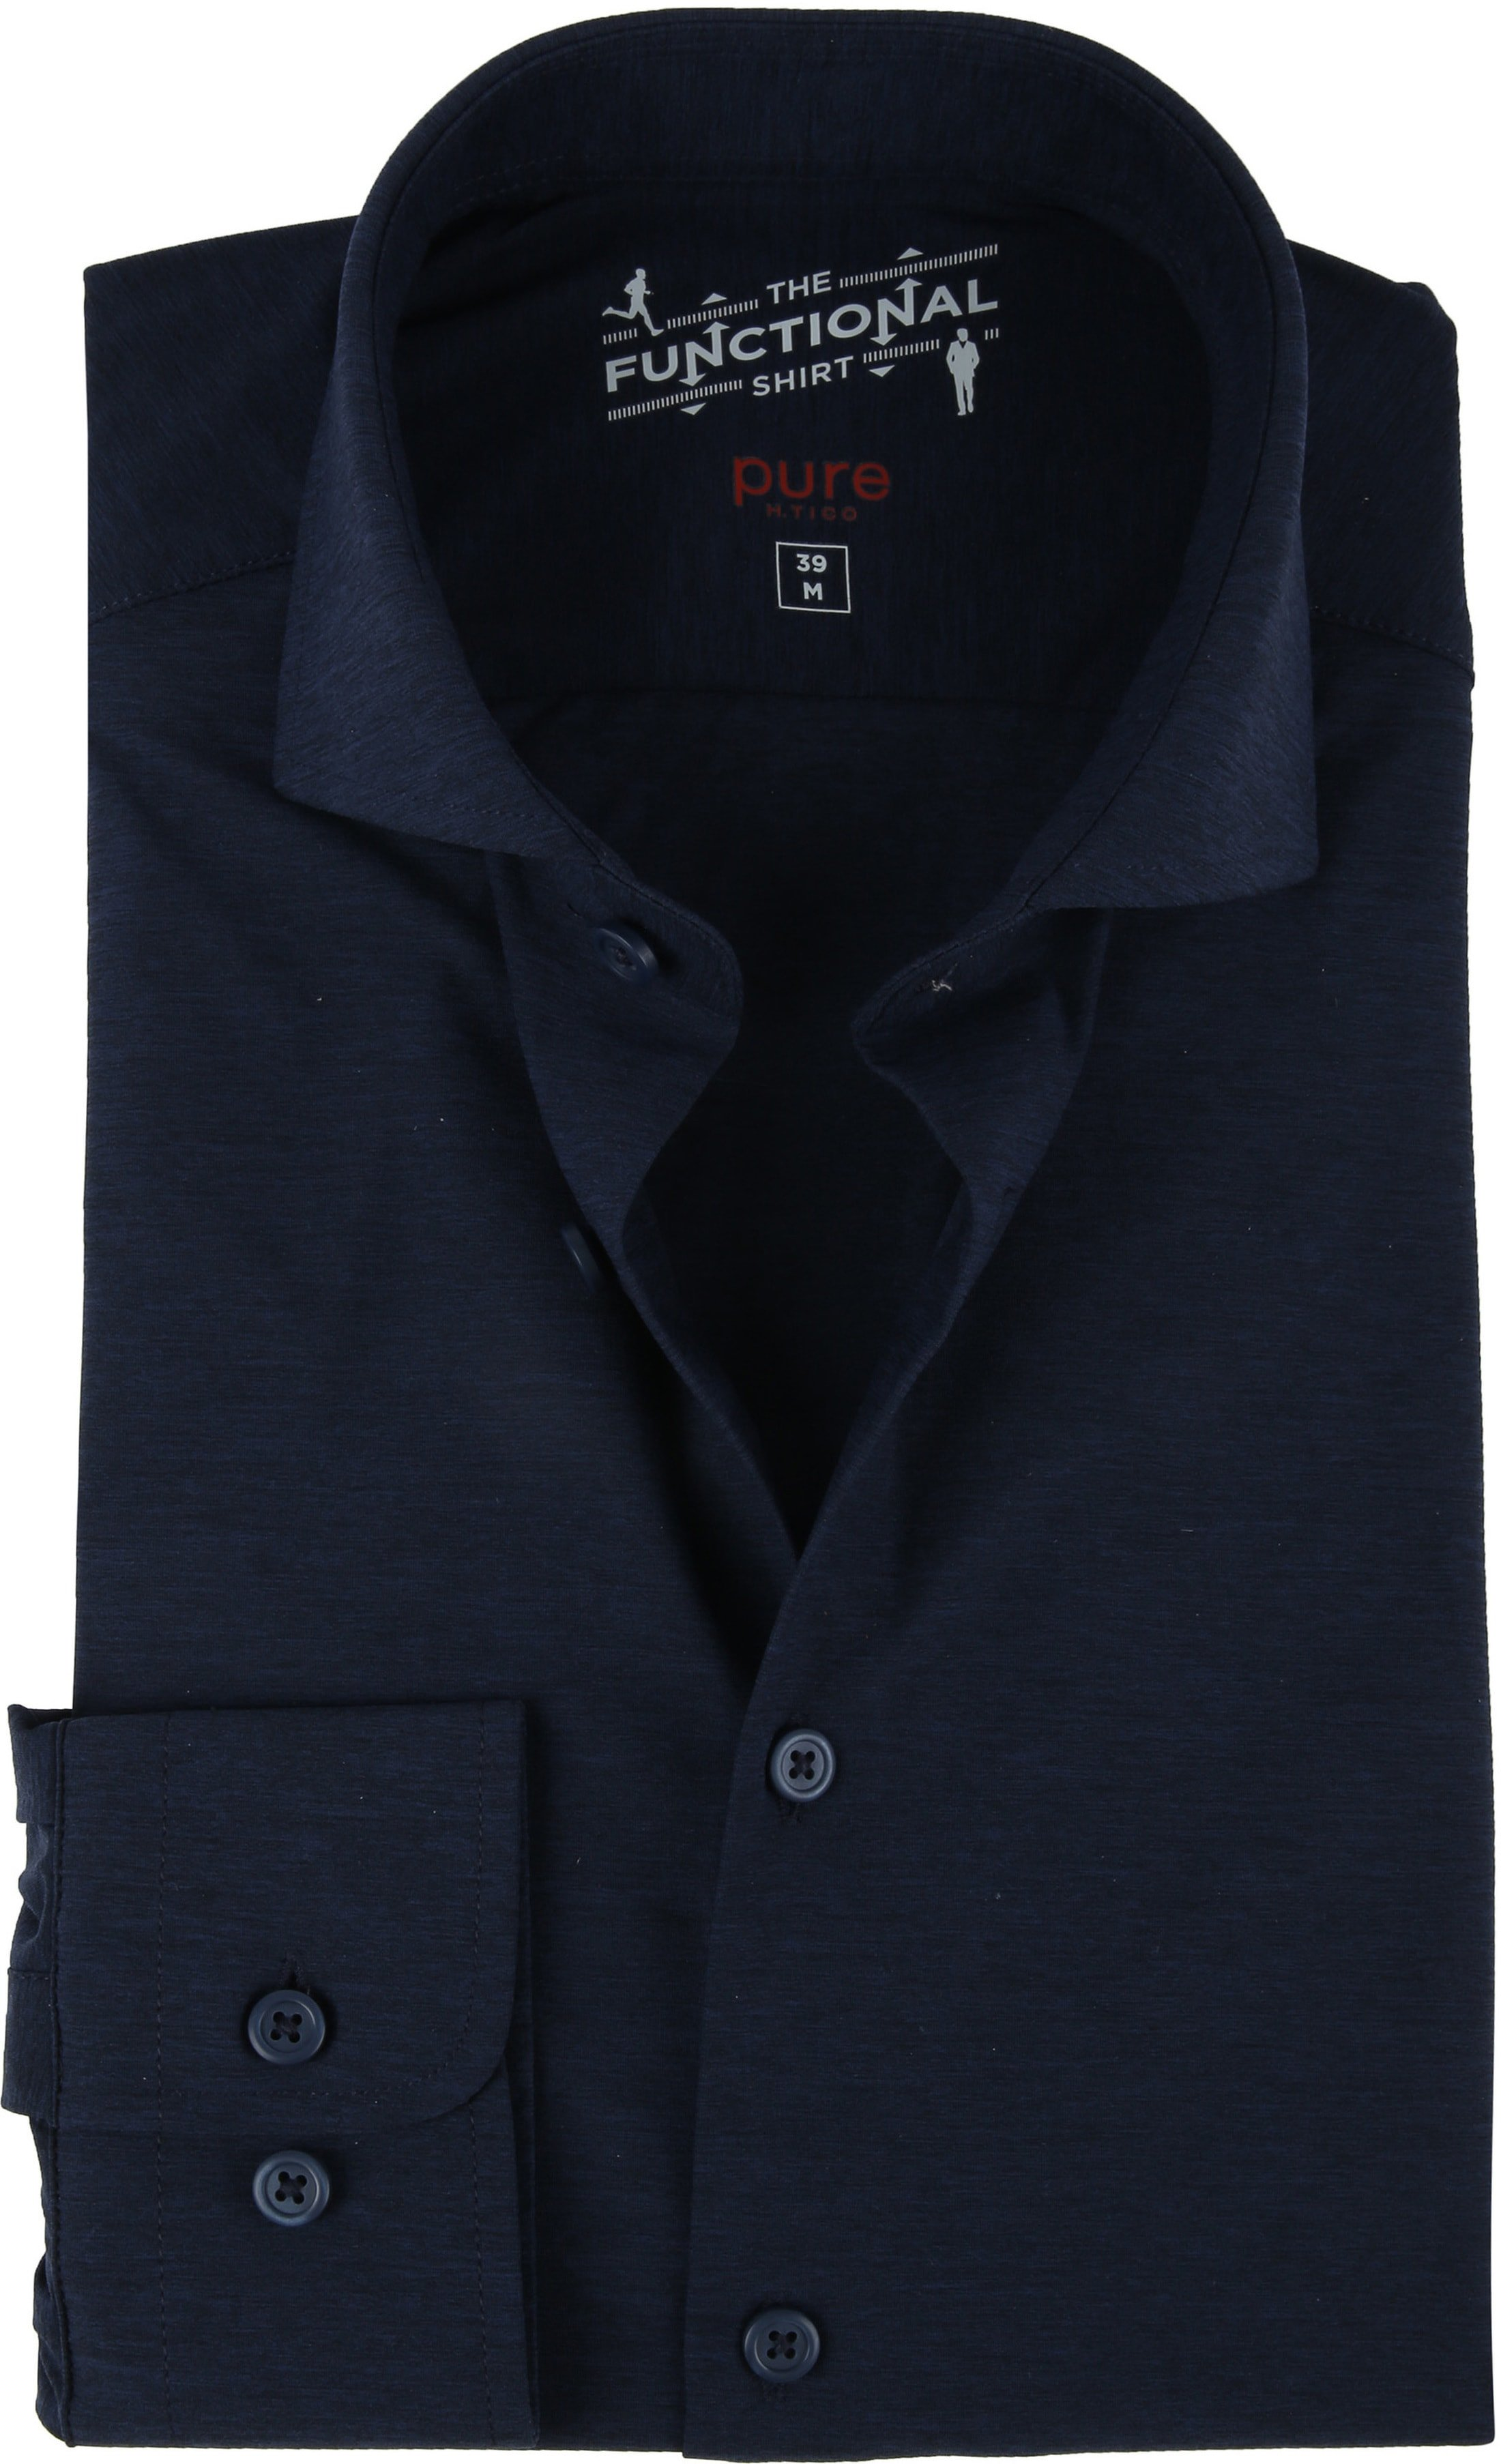 Pure H.Tico The Functional Shirt Navy